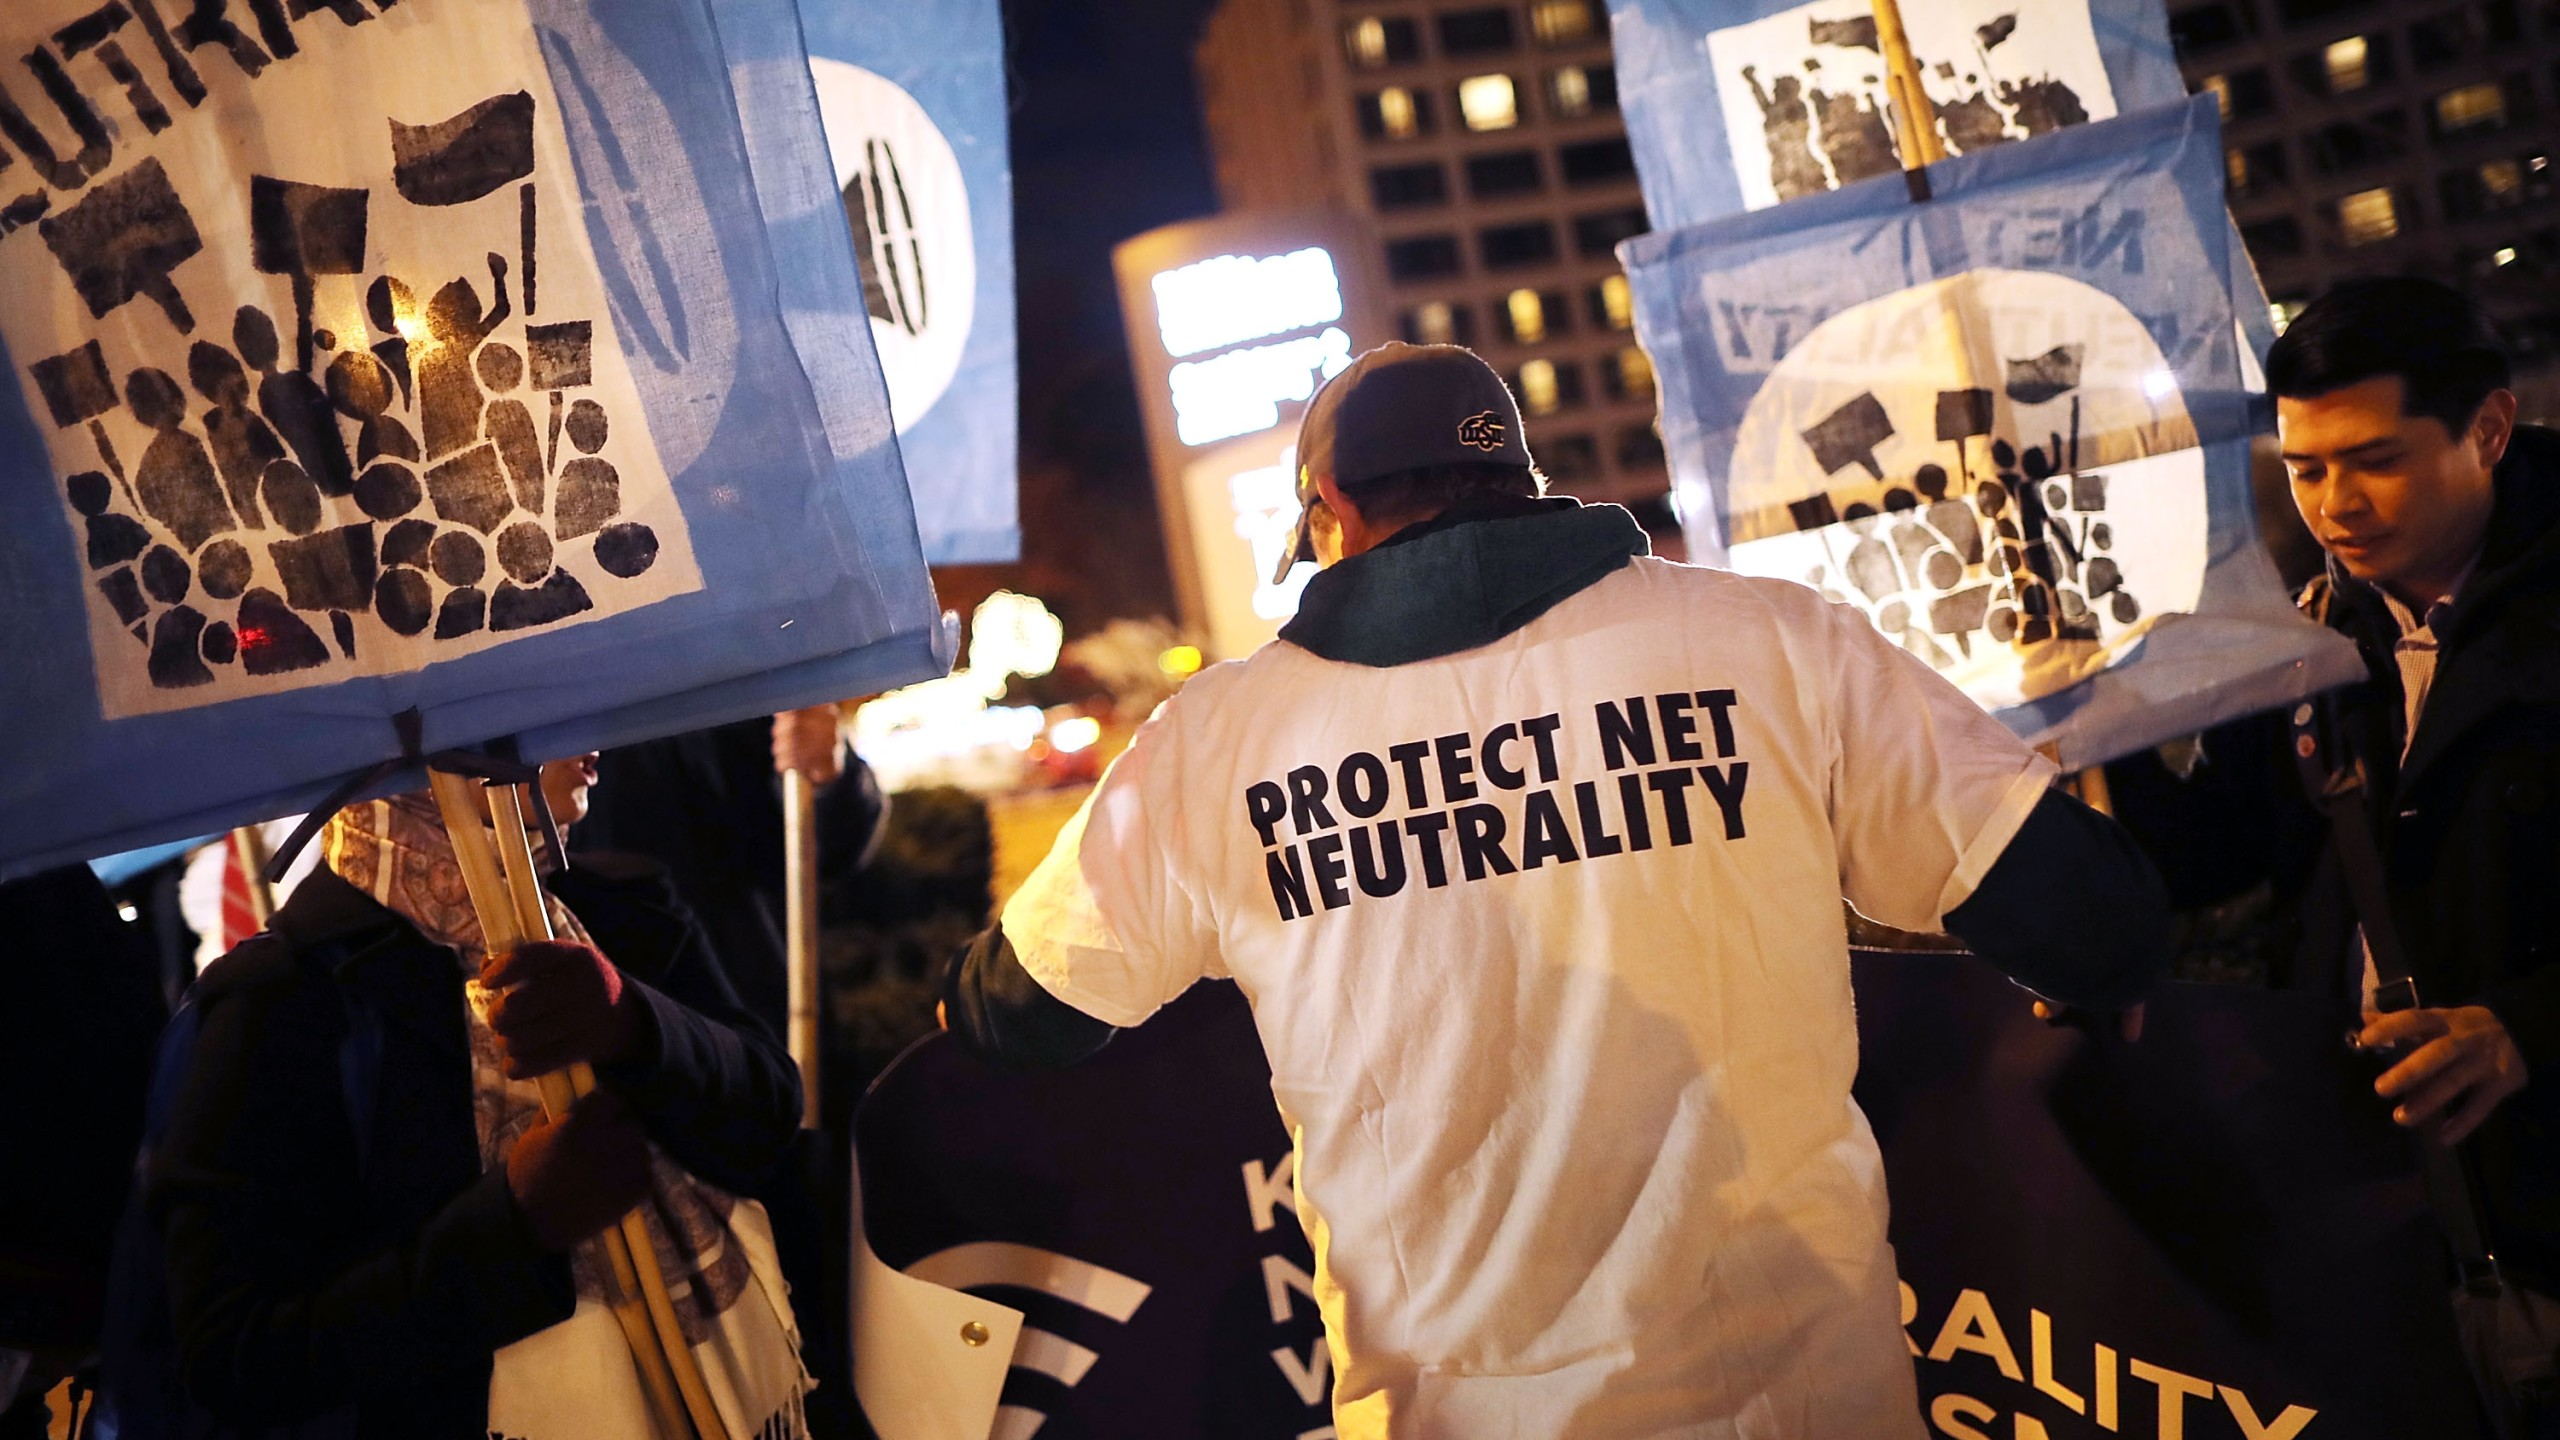 About 60 demonstrators gather outside of the 31st Annual Chairman's Dinner to show their support for net neutrality at the Washington Hilton December 7, 2017 in Washington, United States. (Credit: Chip Somodevilla/Getty Images)